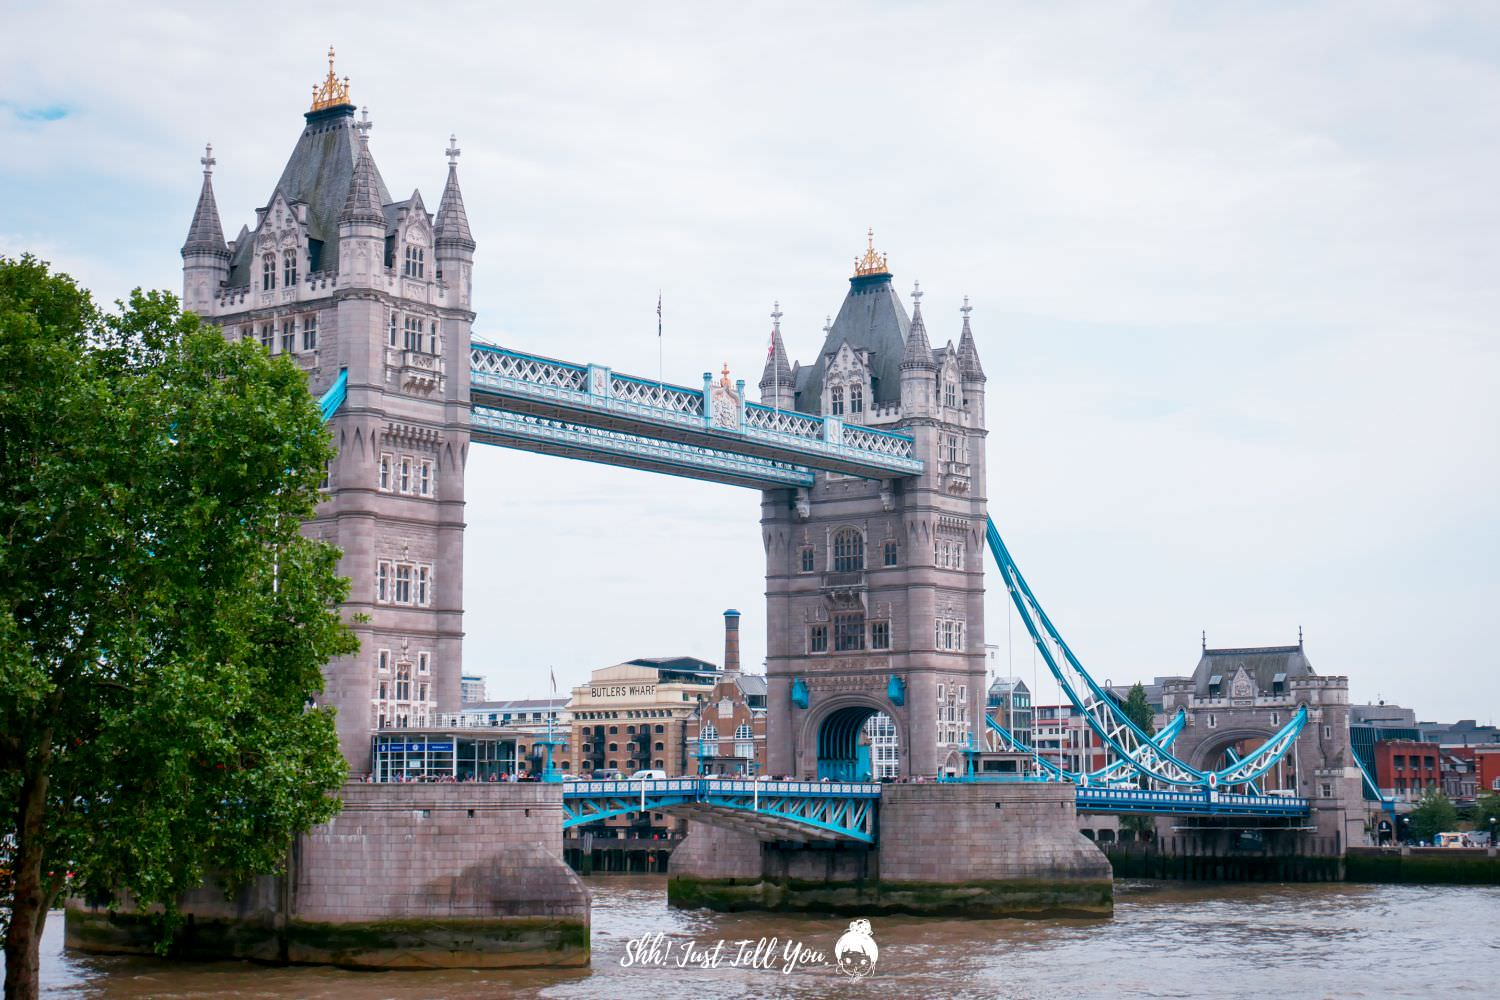 Tower of London 倫敦塔、倫敦塔橋 Tower Bridge